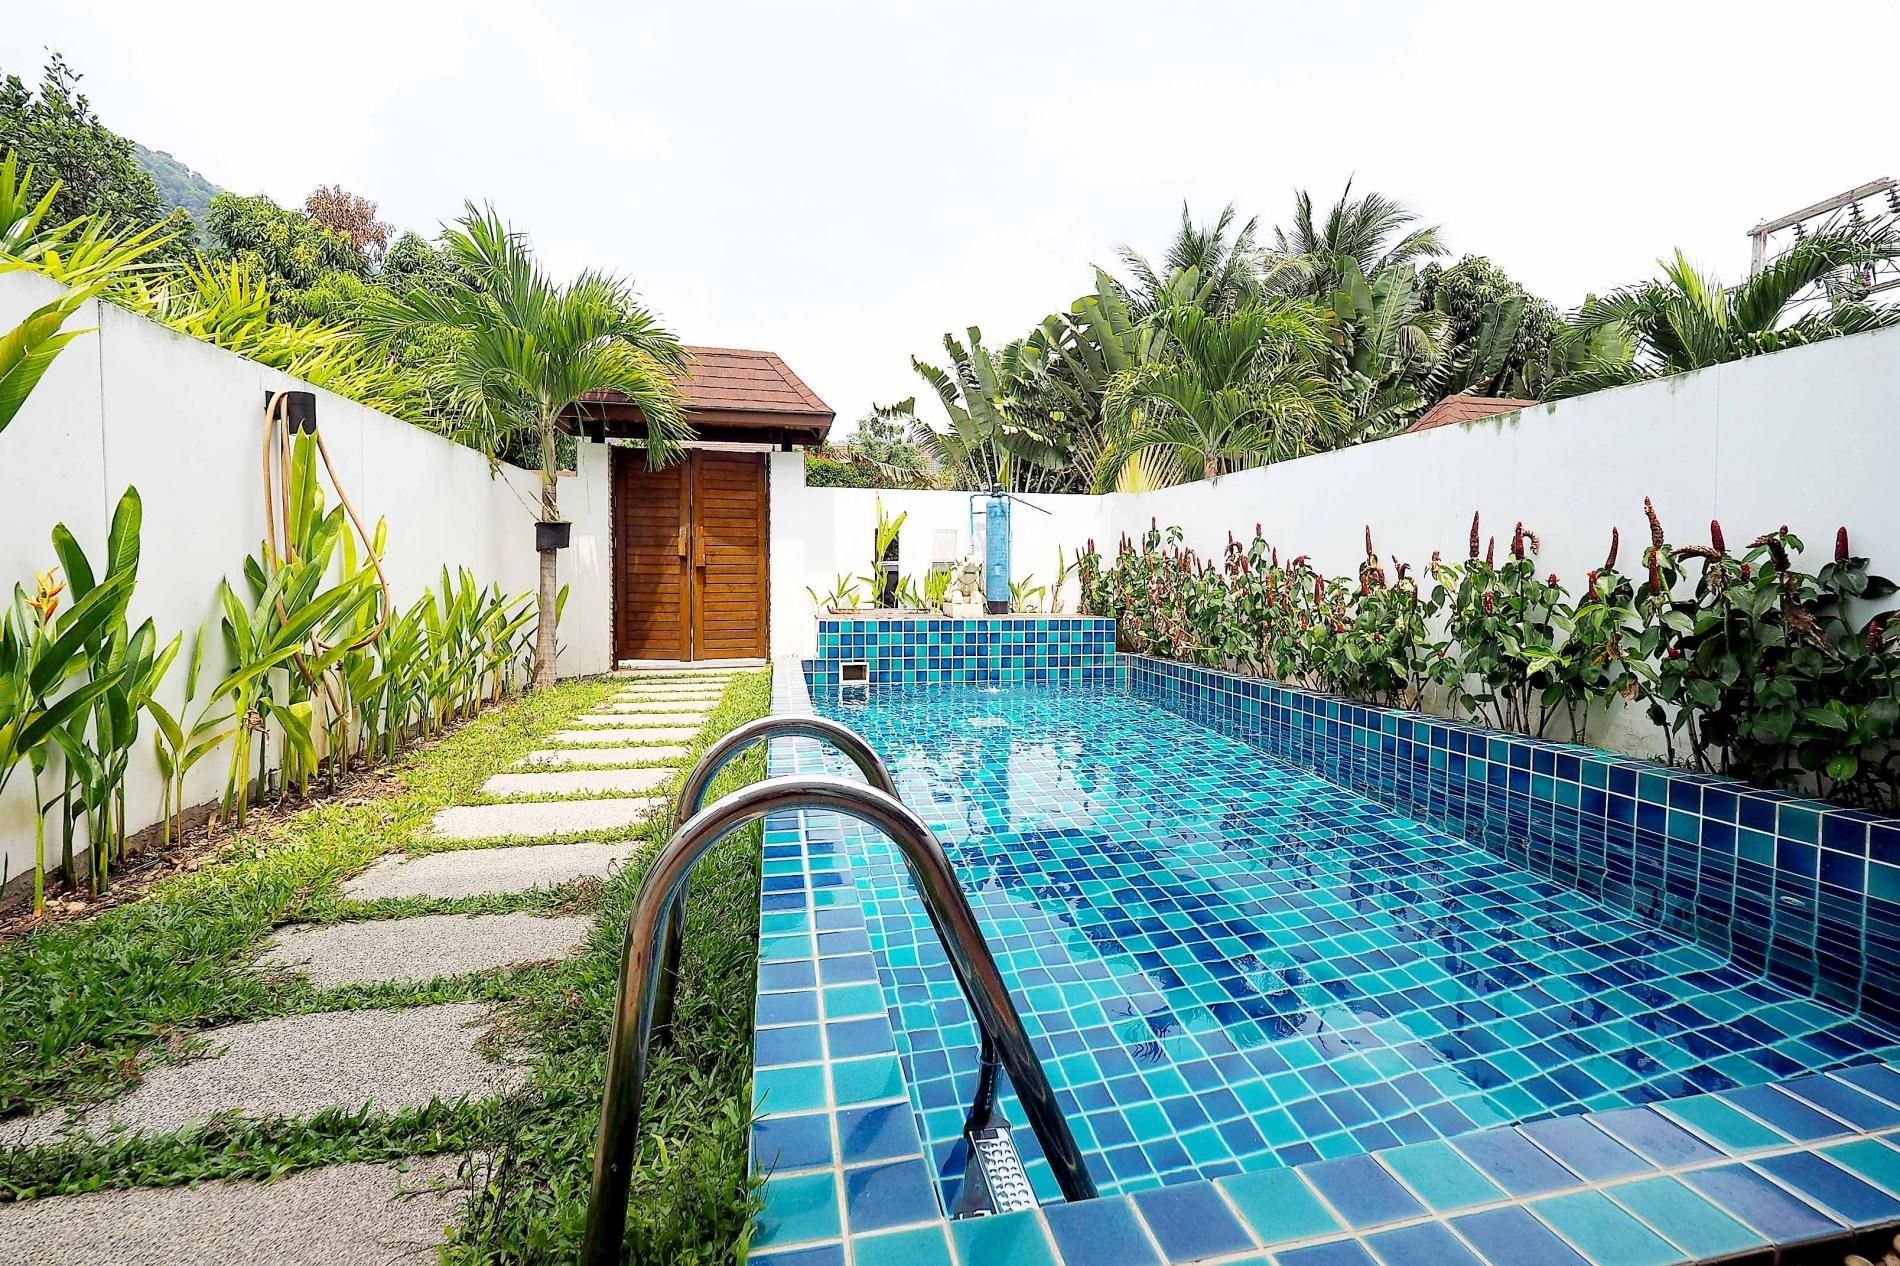 Apartment AP West 5 - Pool villa in Kamala - Great Value  photo 18646078